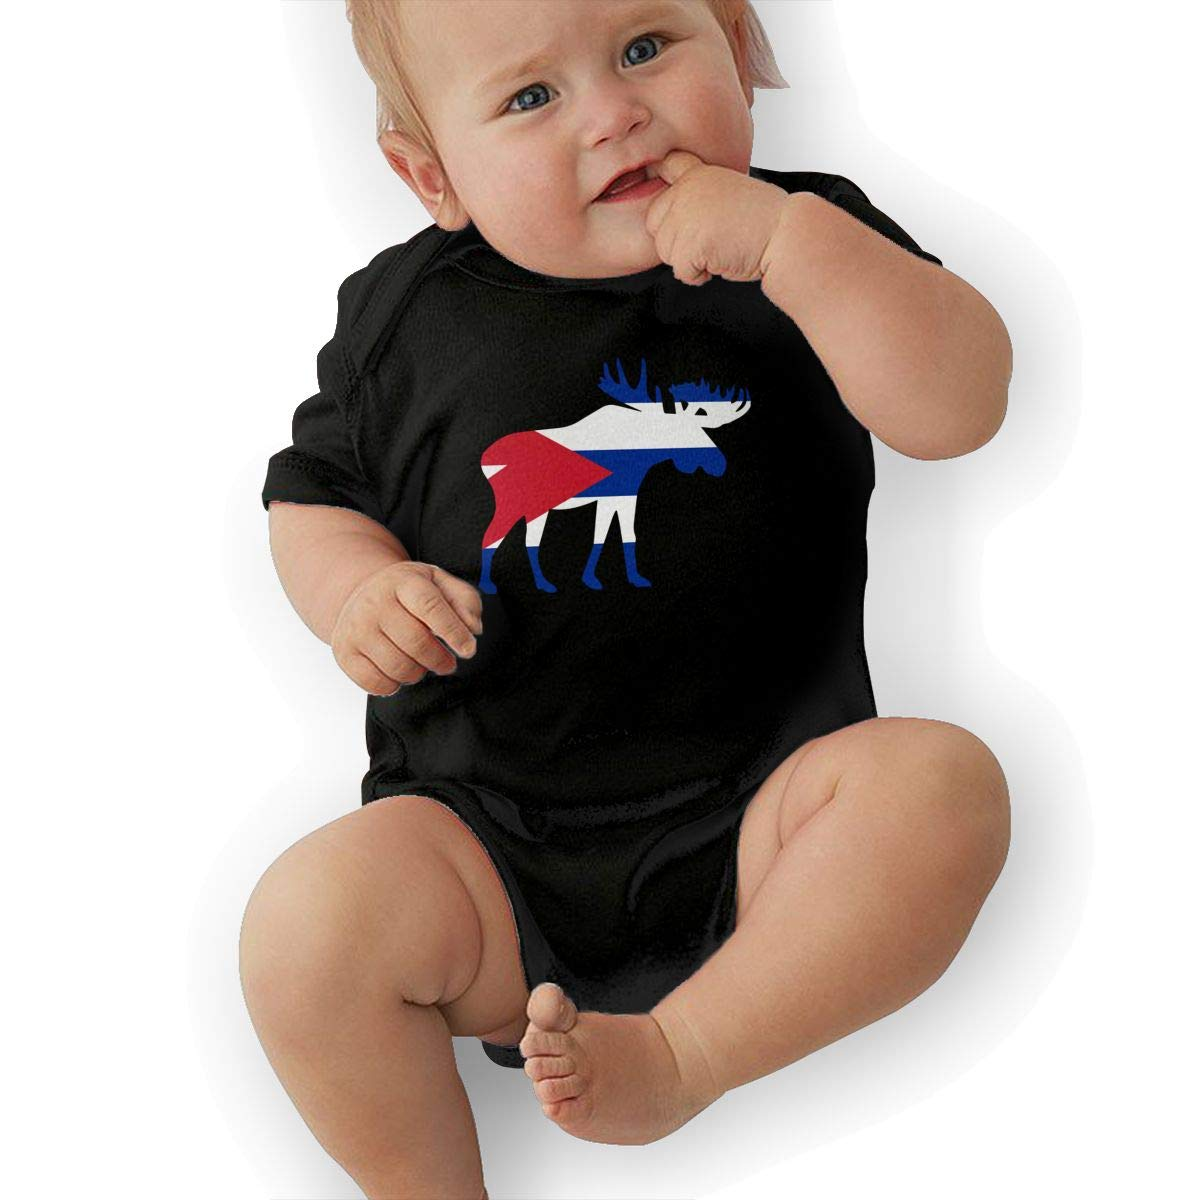 U88oi-8 Short Sleeve Cotton Rompers for Baby Boys and Girls Fashion Cuba Moose Onesies